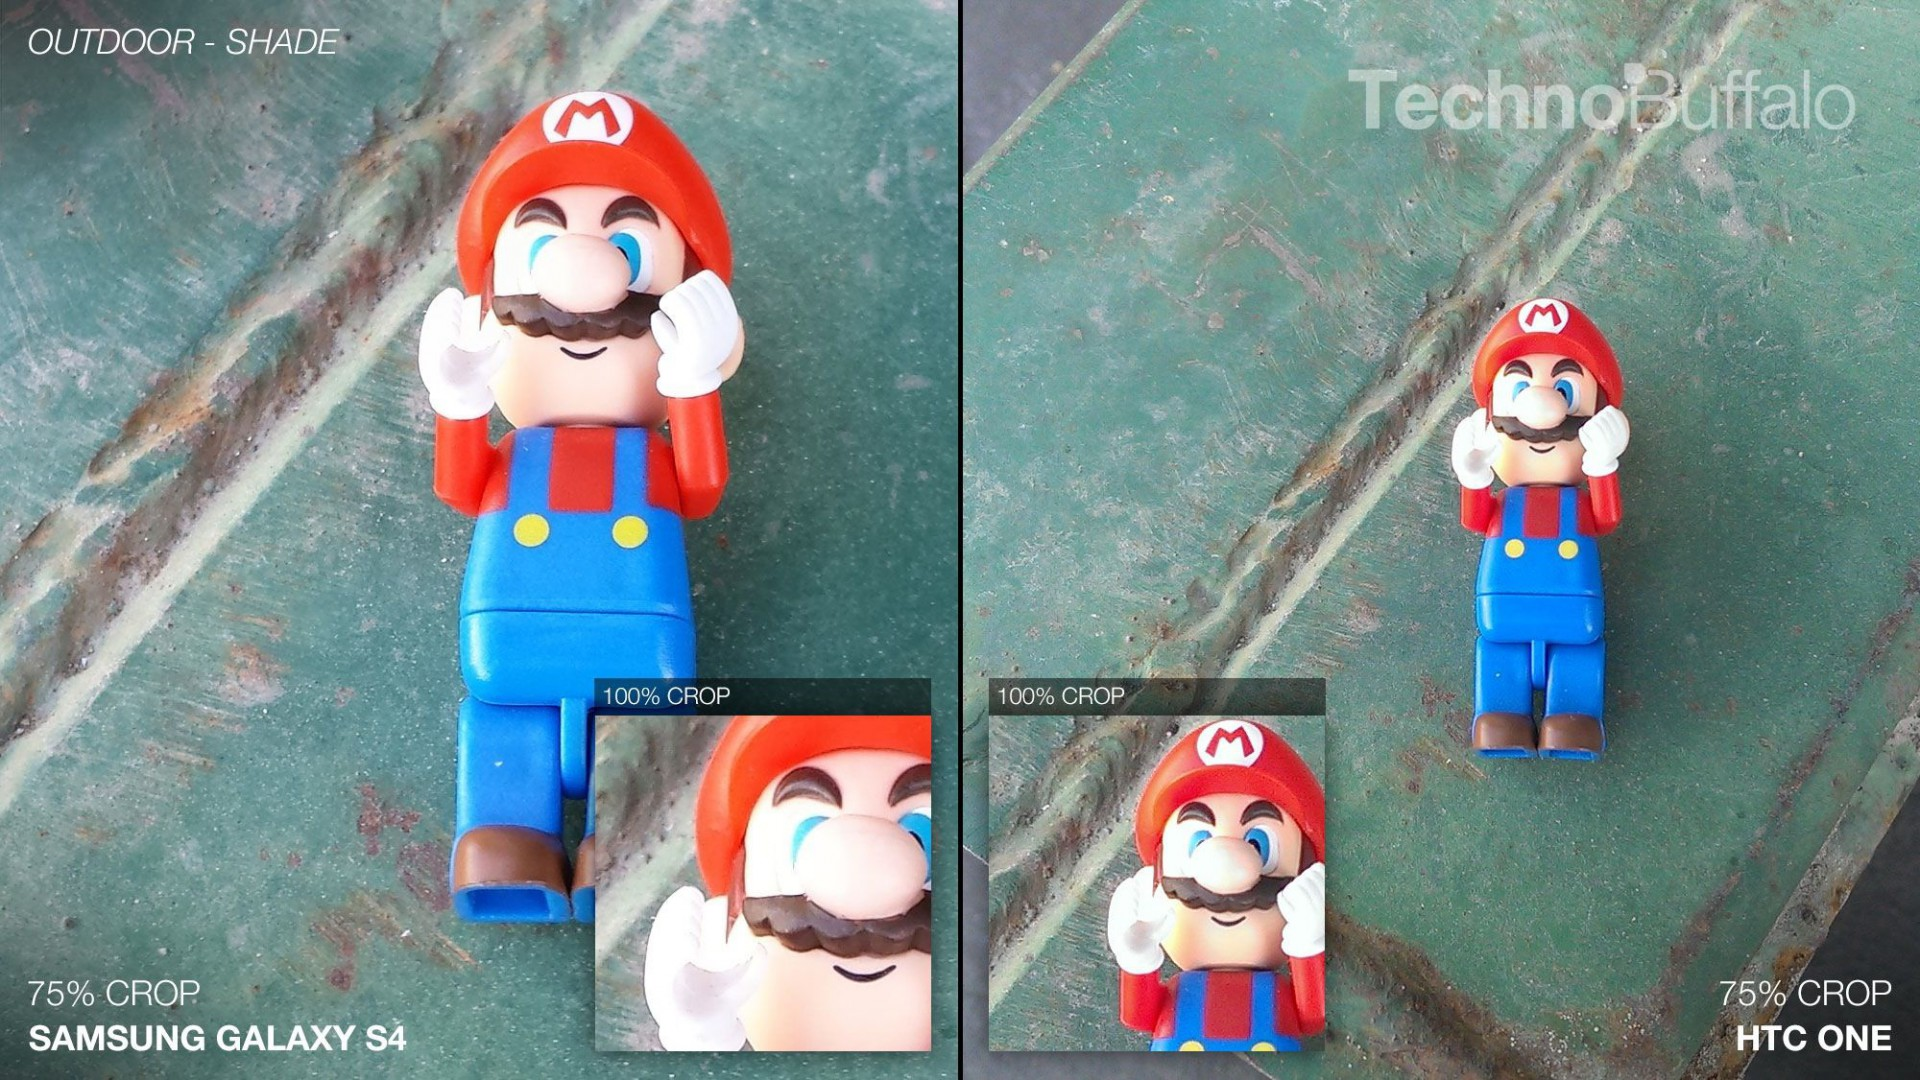 Samsung-Galaxy-S4-vs-HTC-One-Camera-Comparison-Outdoor-Shade-Mario